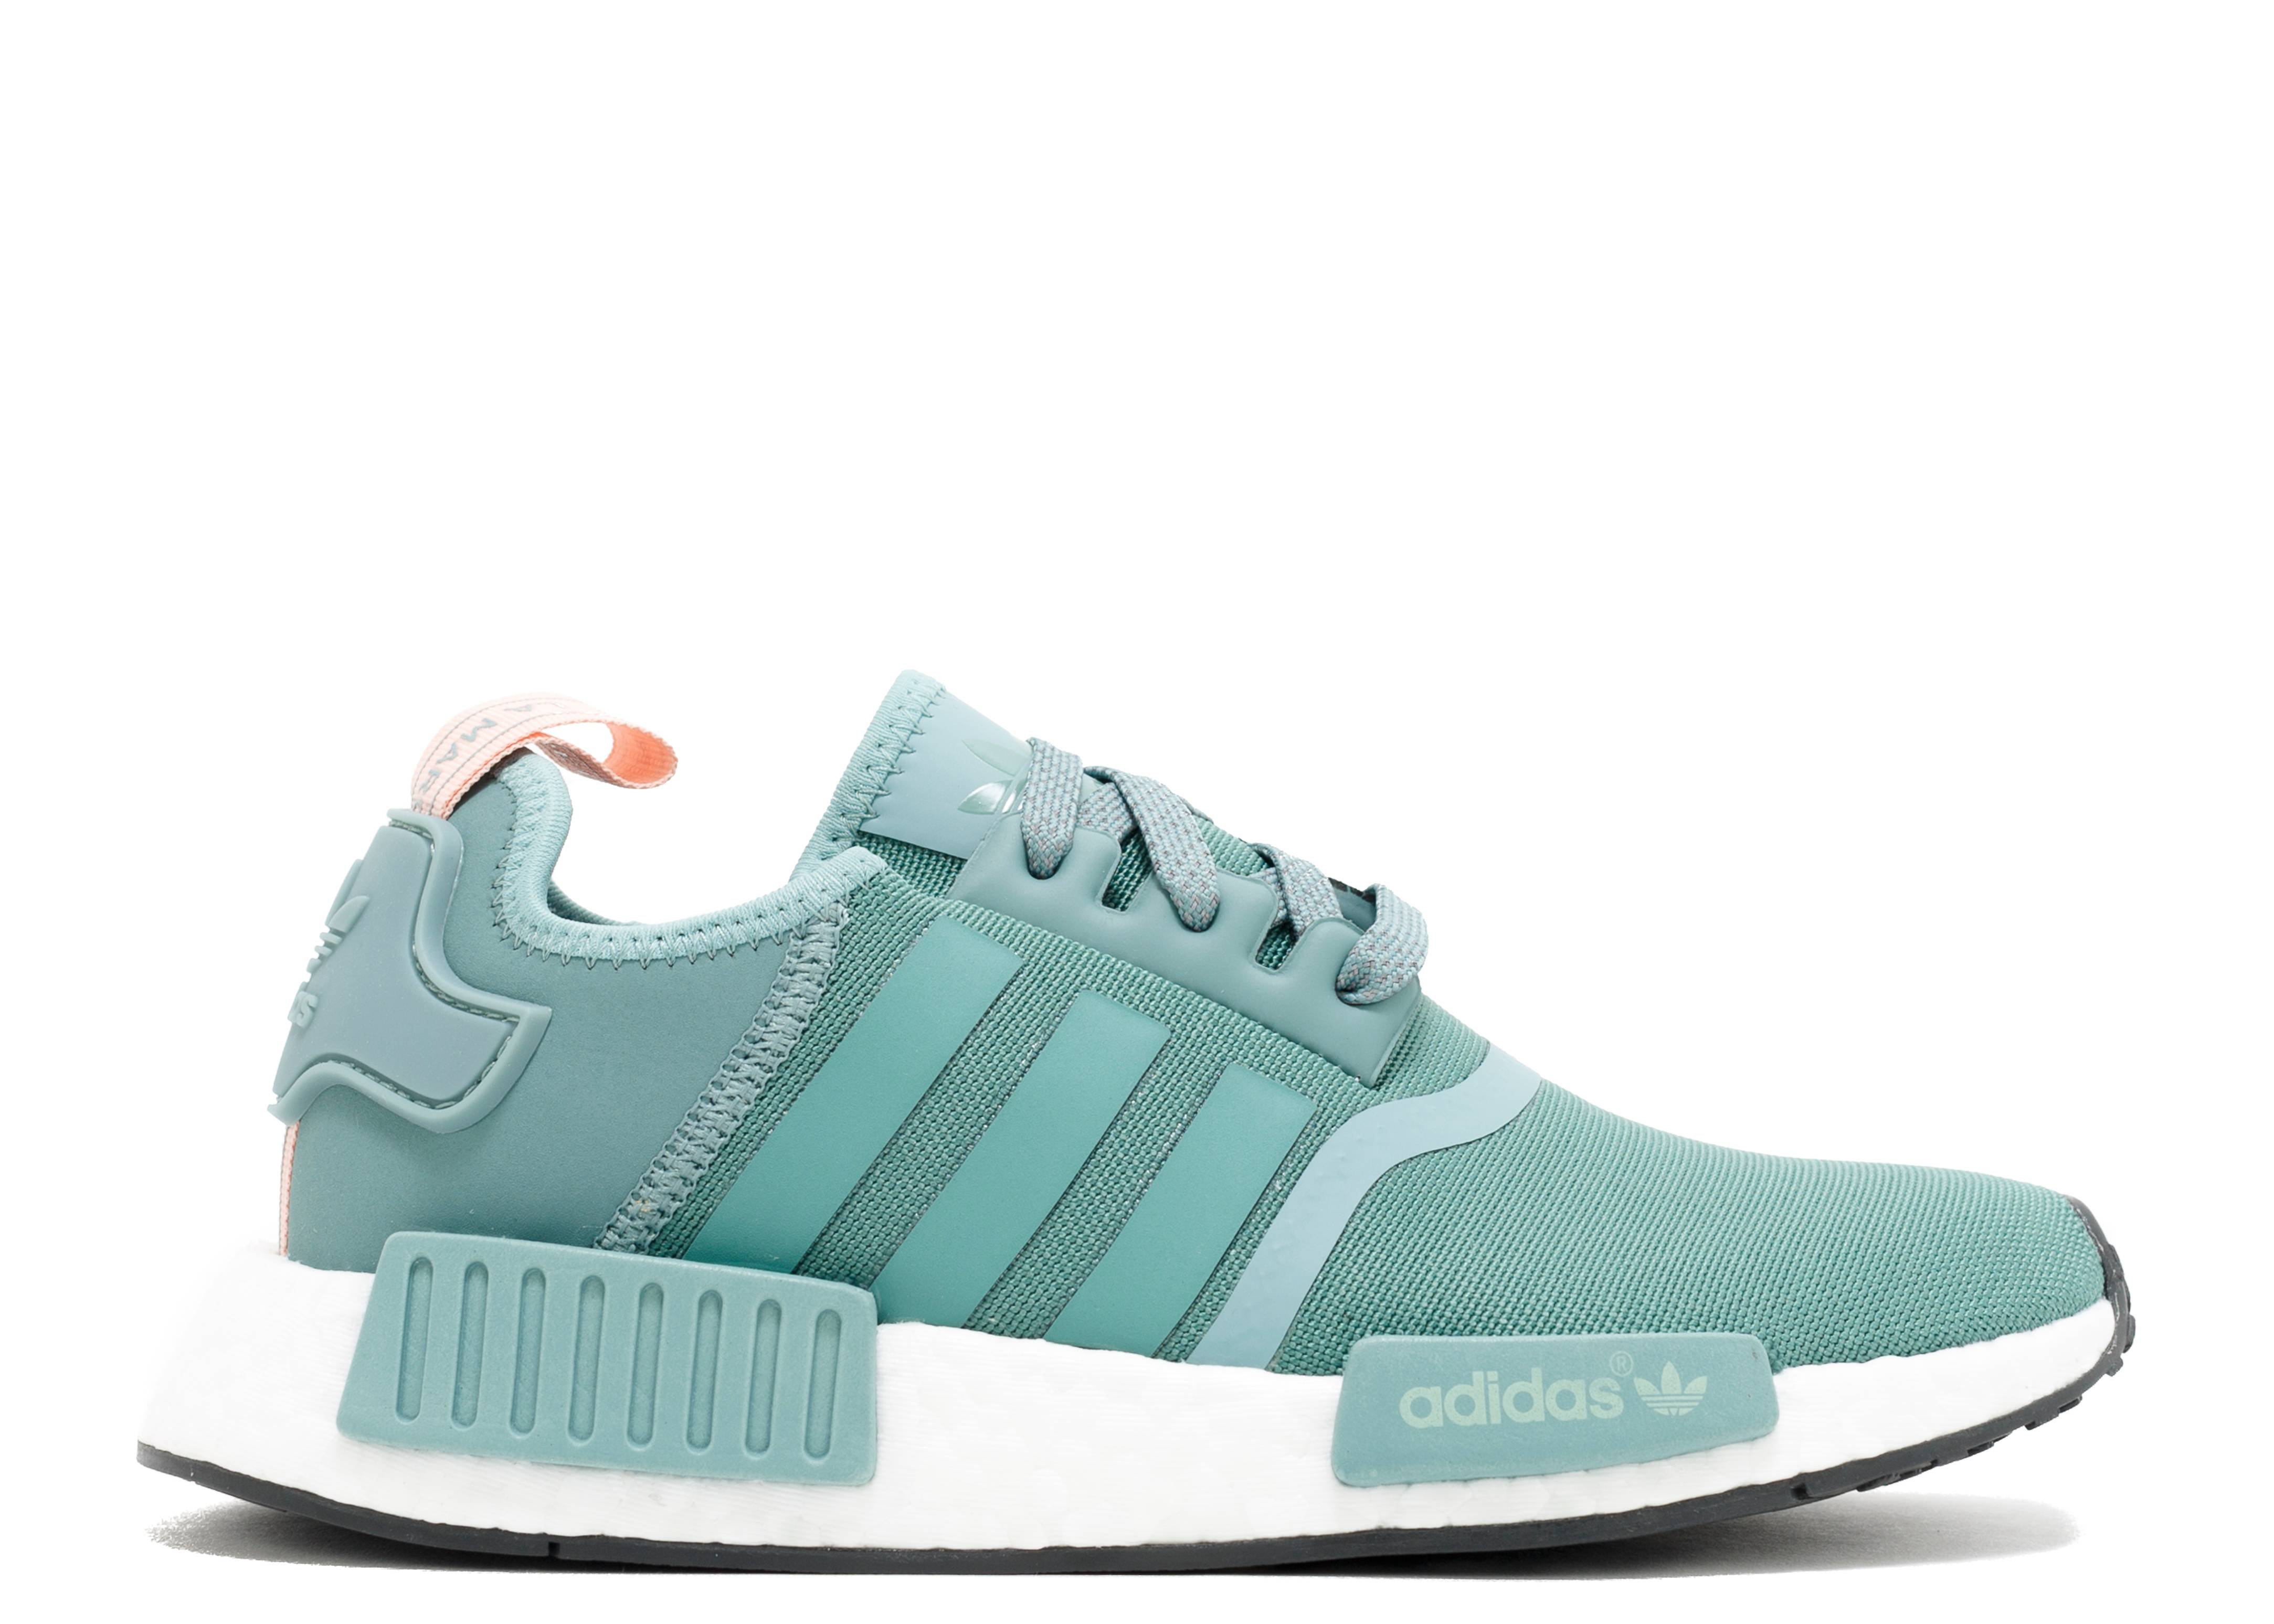 adidas nmd r1 mens green womens adidas nmd white pink Equipped.org Blog 2e39179a46